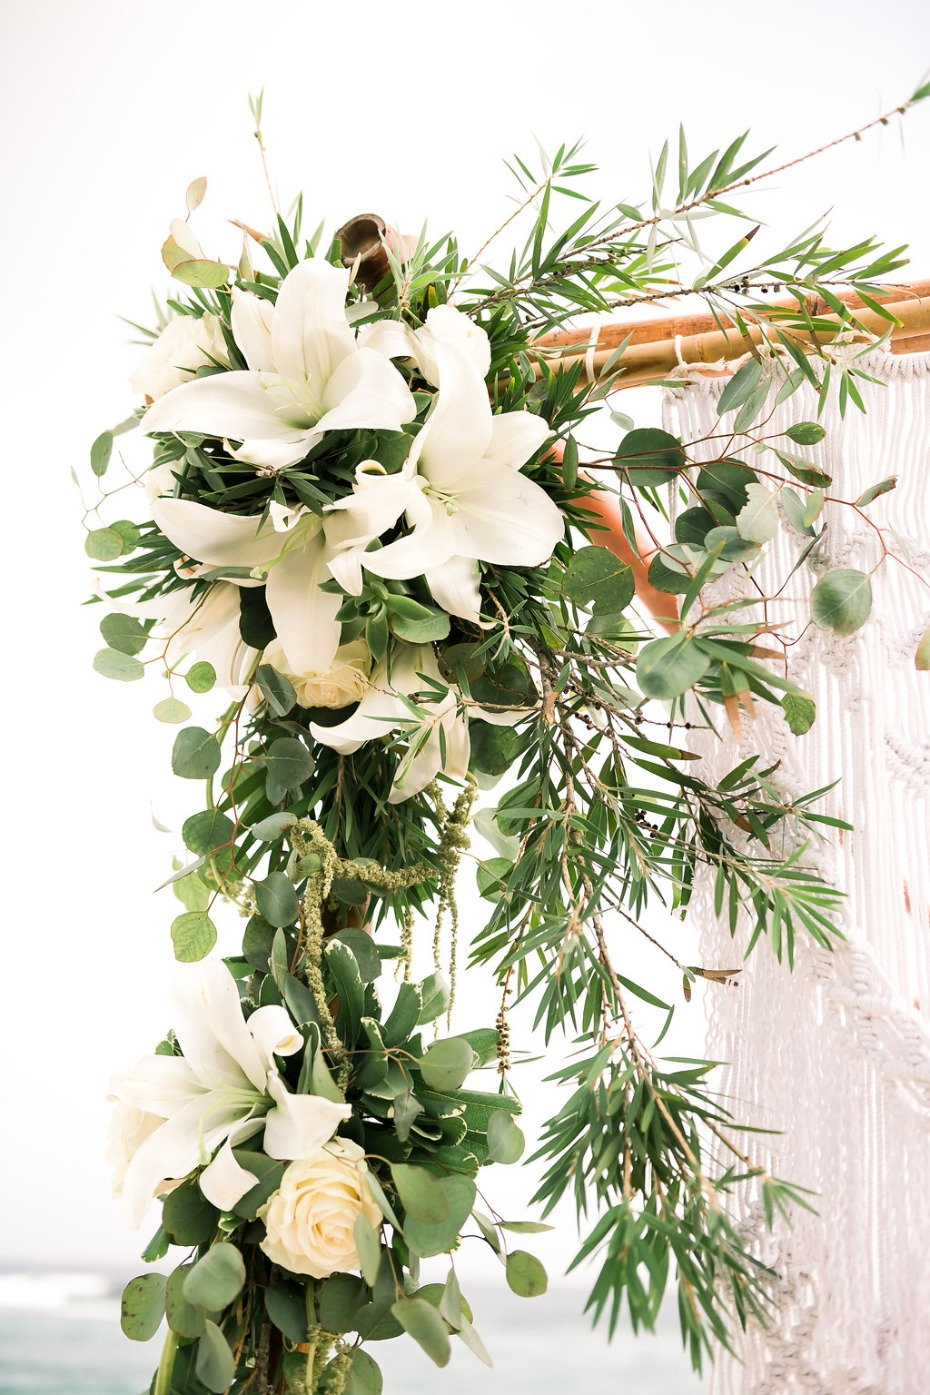 Cayman Island Beach Wedding - Floral Chuppah